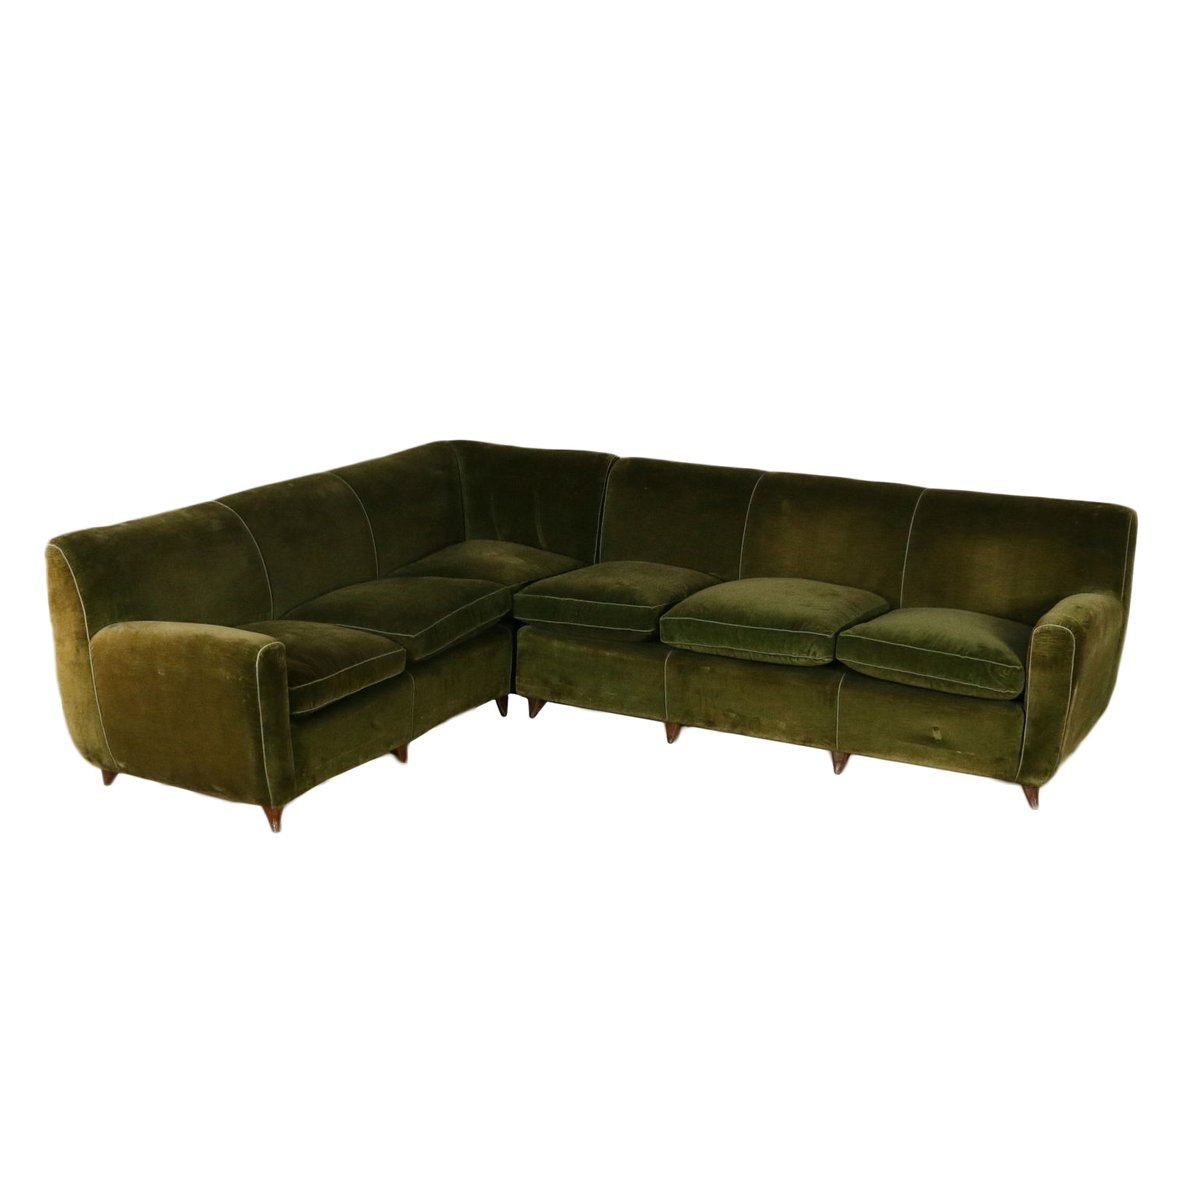 Vintage Italian Corner Sofa With Feather Cushions